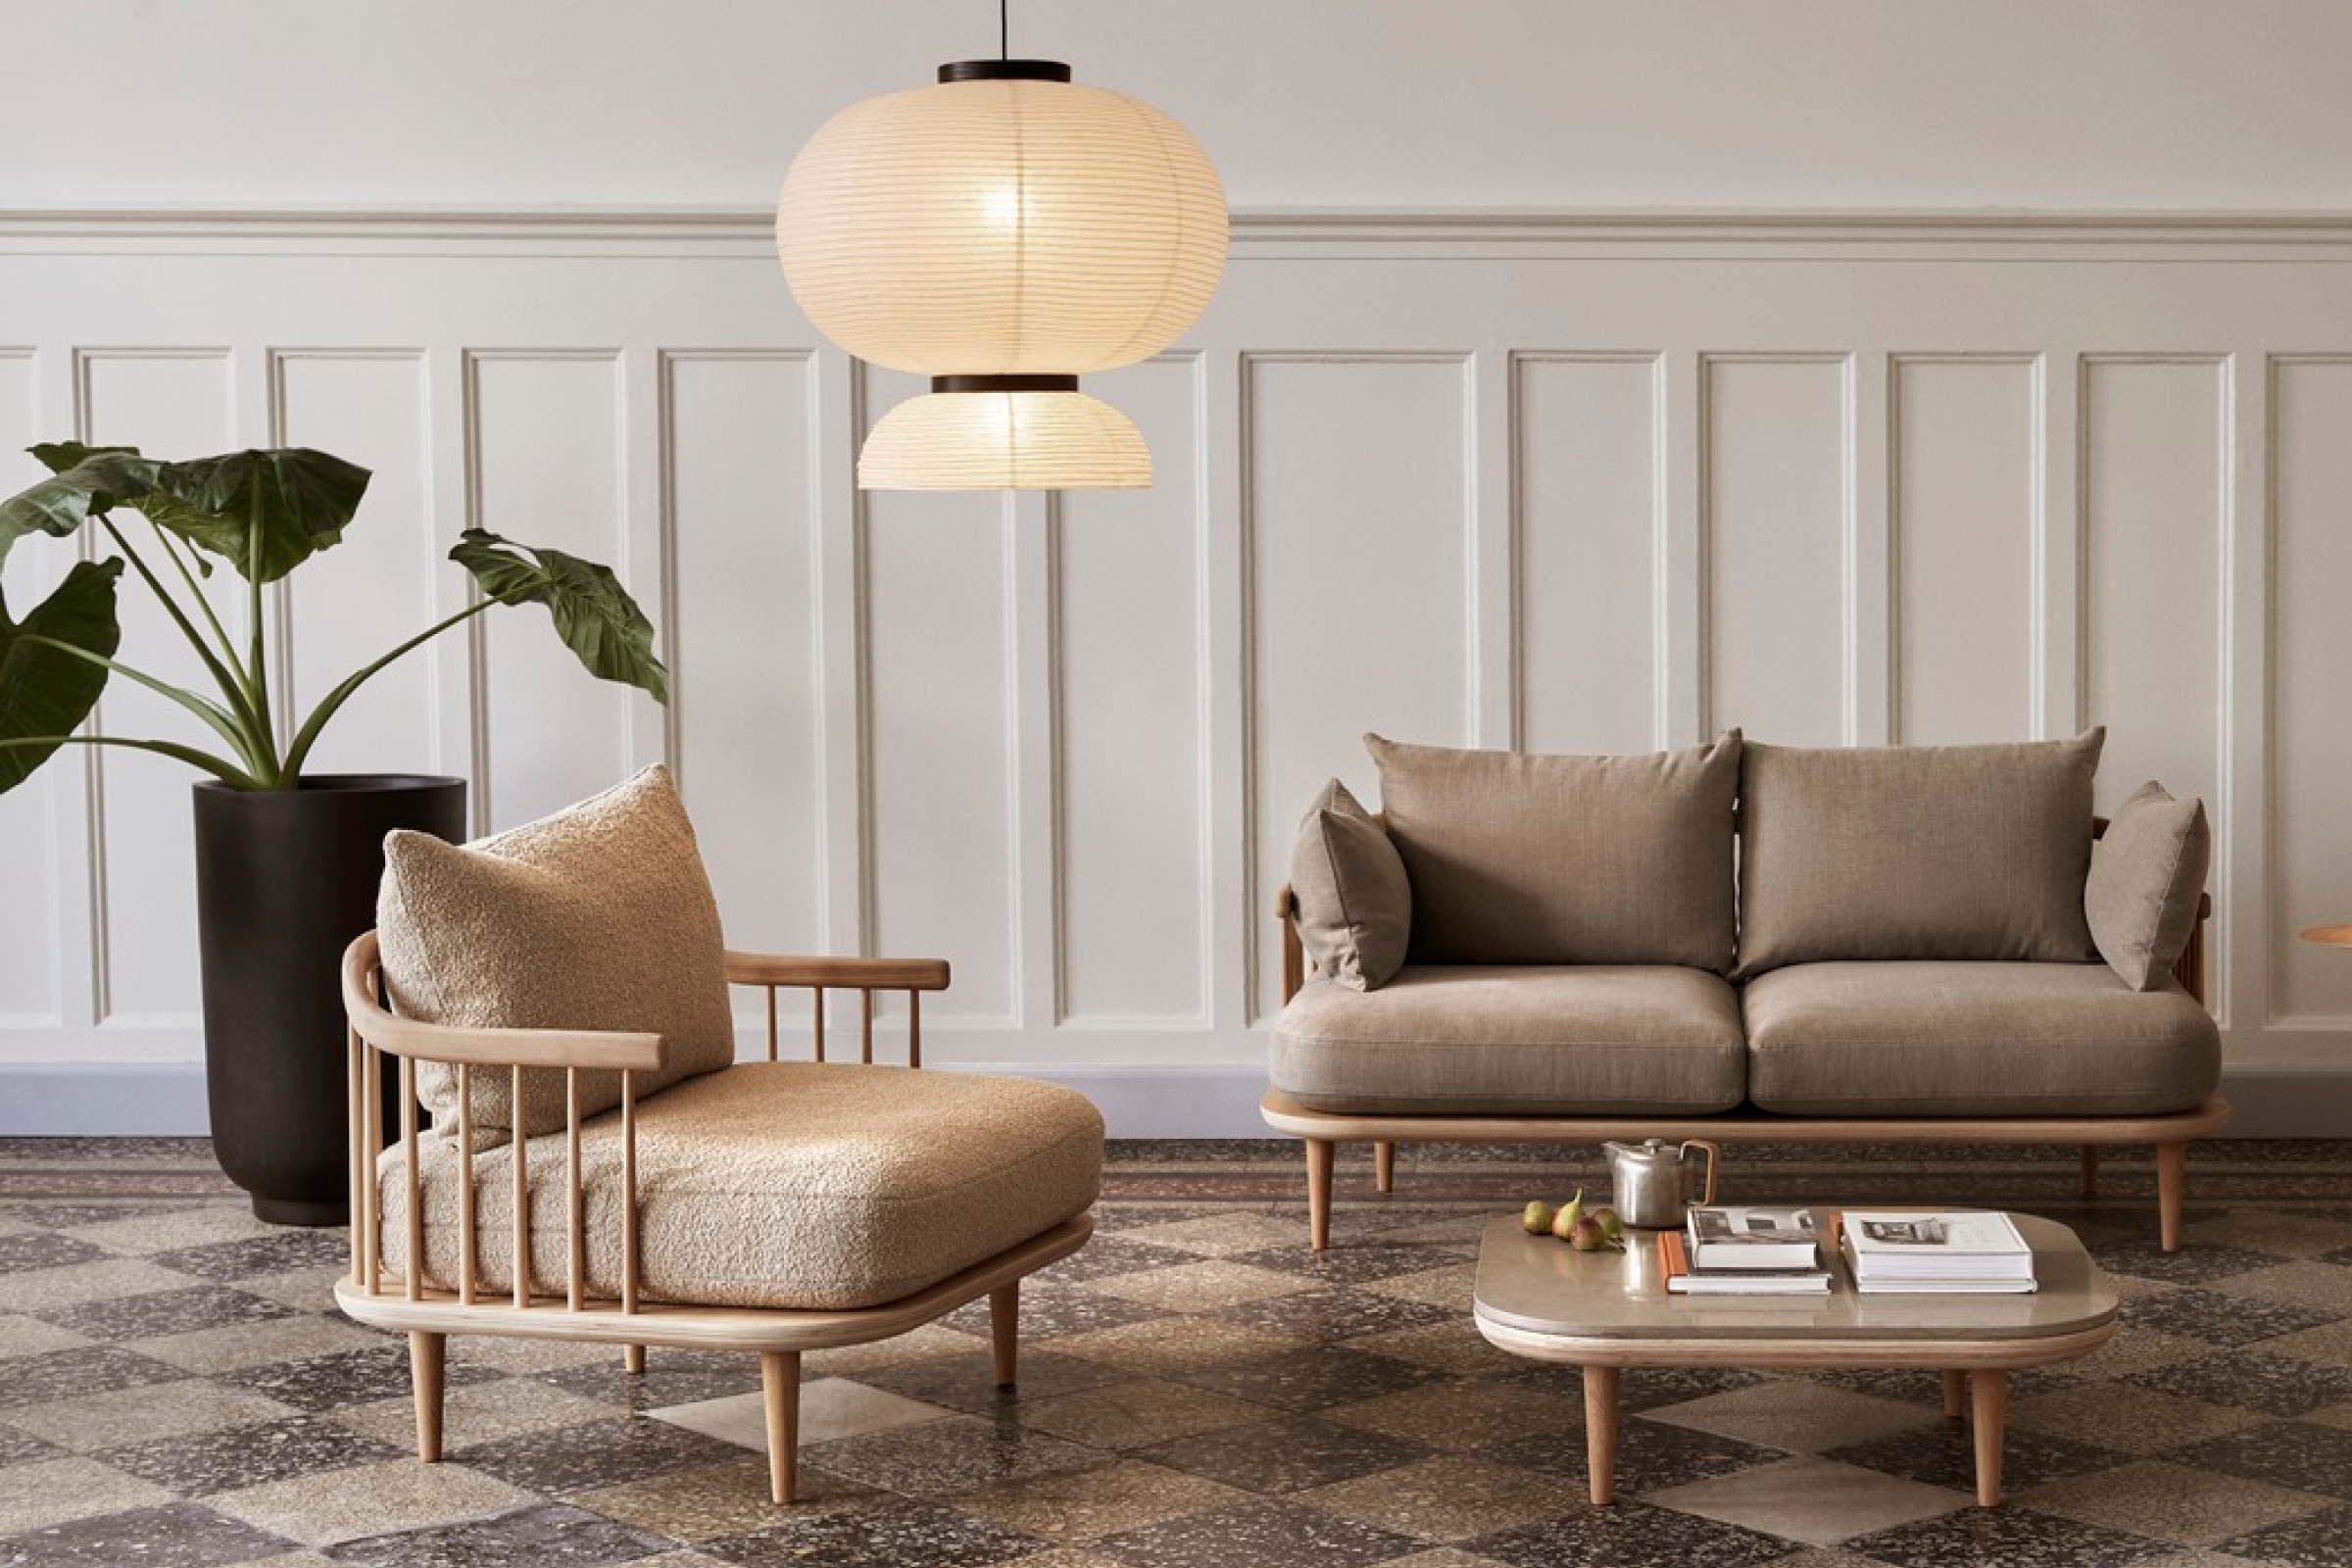 How to find design-led furniture for your next project